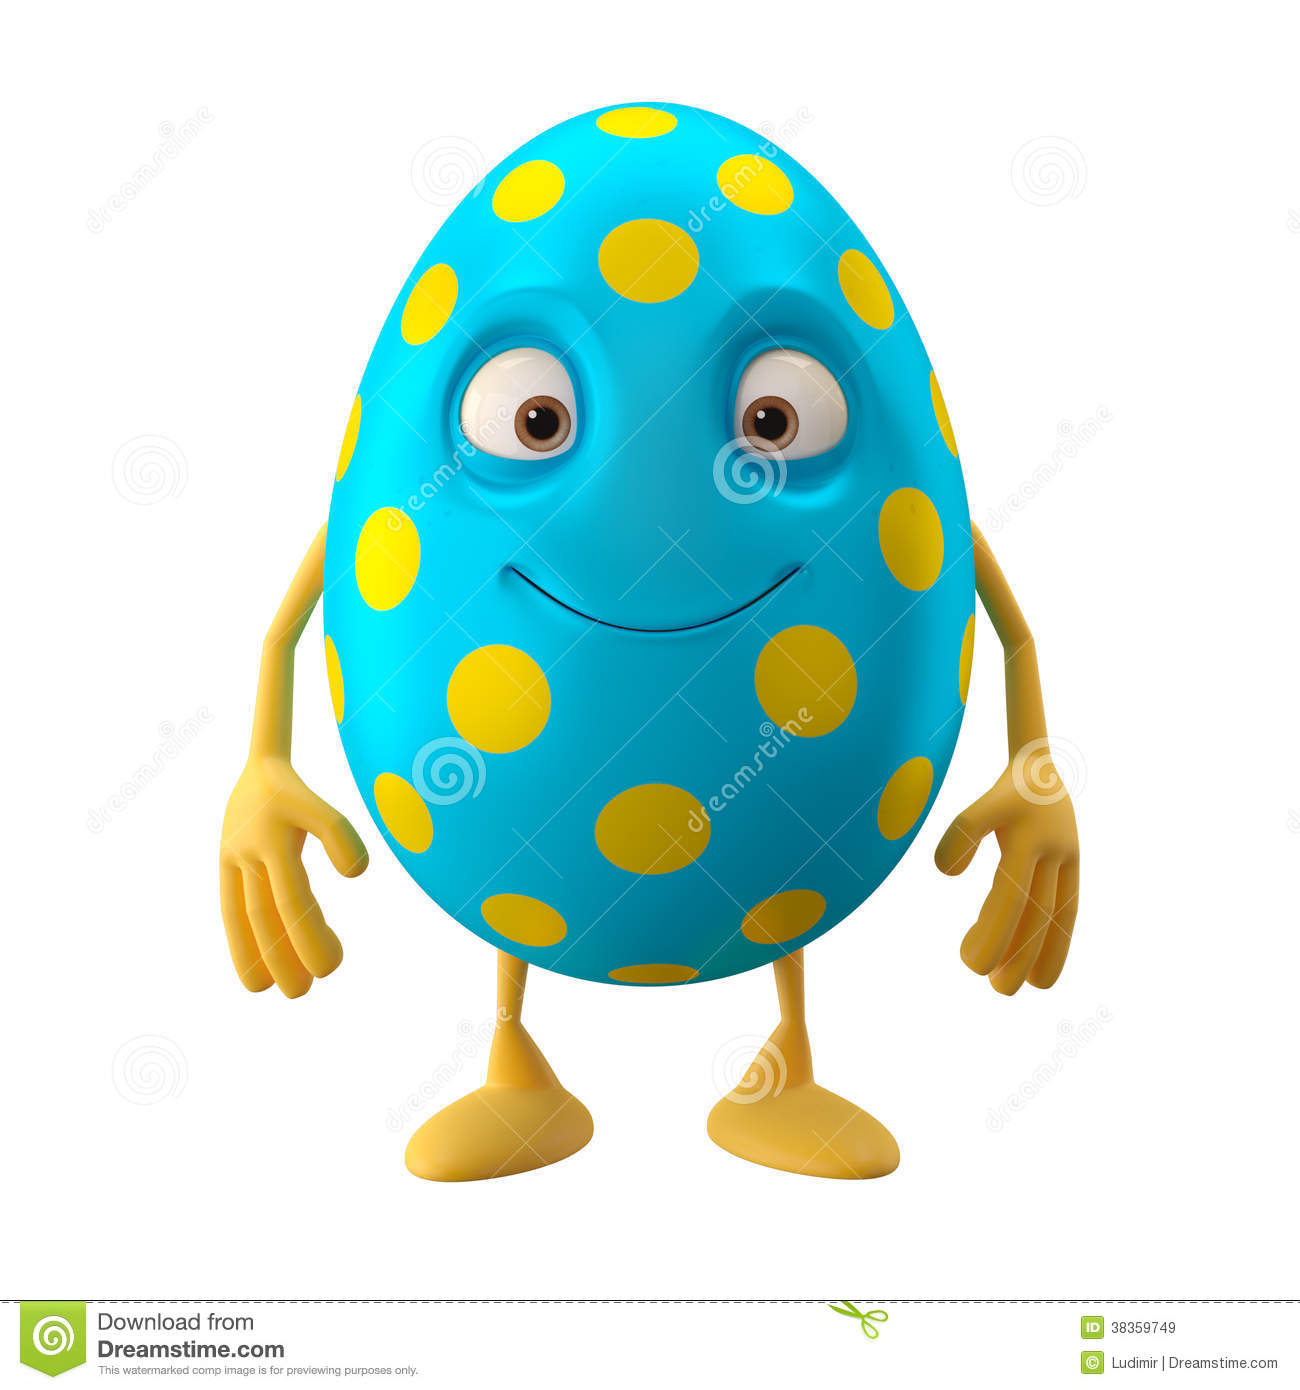 File Cat Napping   Tom images Jerry in collar together with Royalty Free Stock Image Egg Angry Face Illustration White Background Image40741616 as well Tortoise And The Hare Clipart likewise Healthy Foods likewise The Very Hungry Caterpillar Power Point 34634134. on chocolate egg cartoon